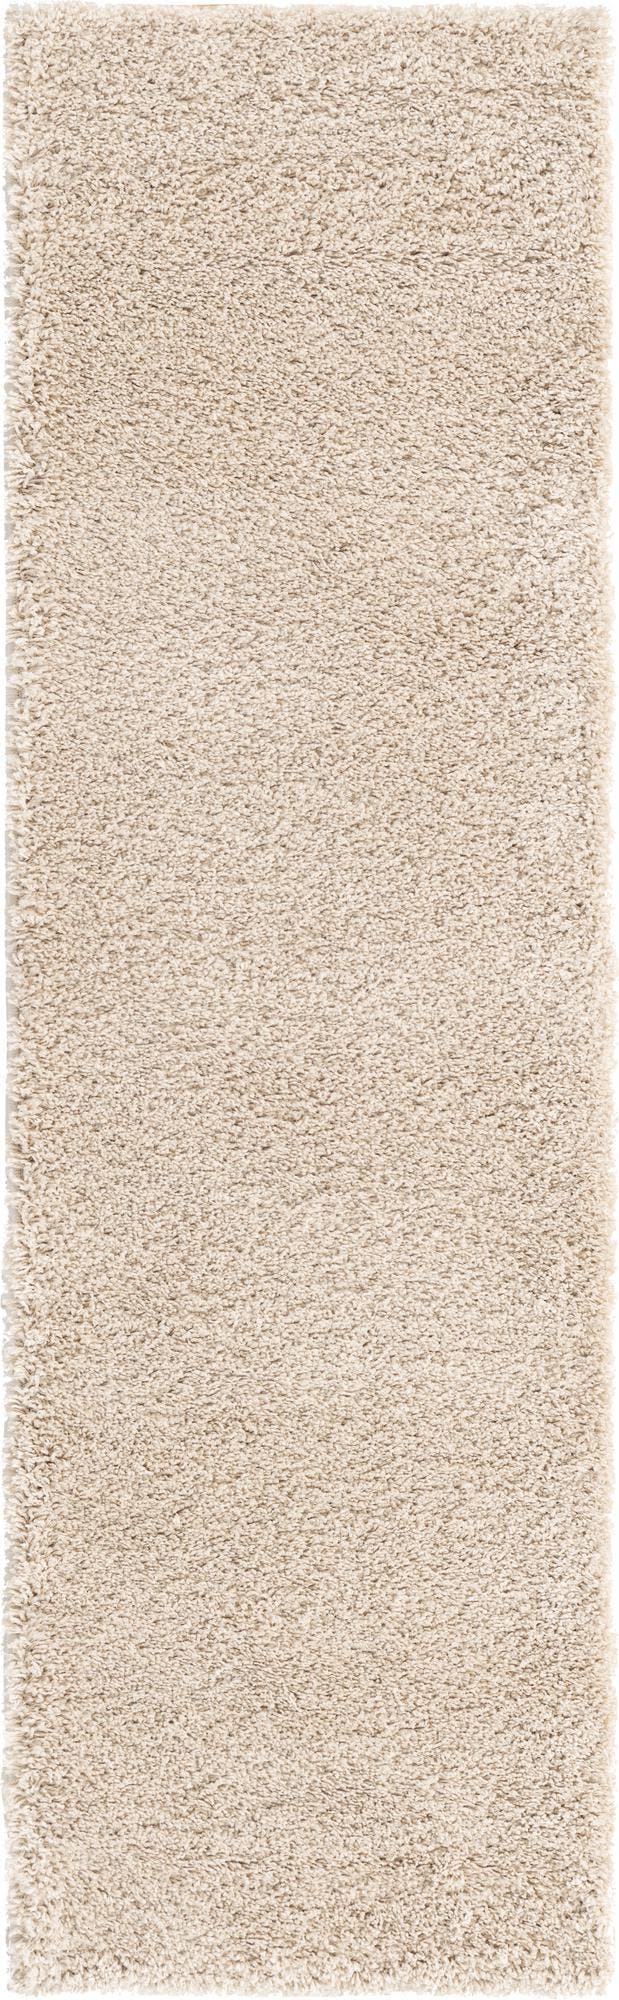 2' x 6' 7 Soft Solid Shag Runner Rug main image